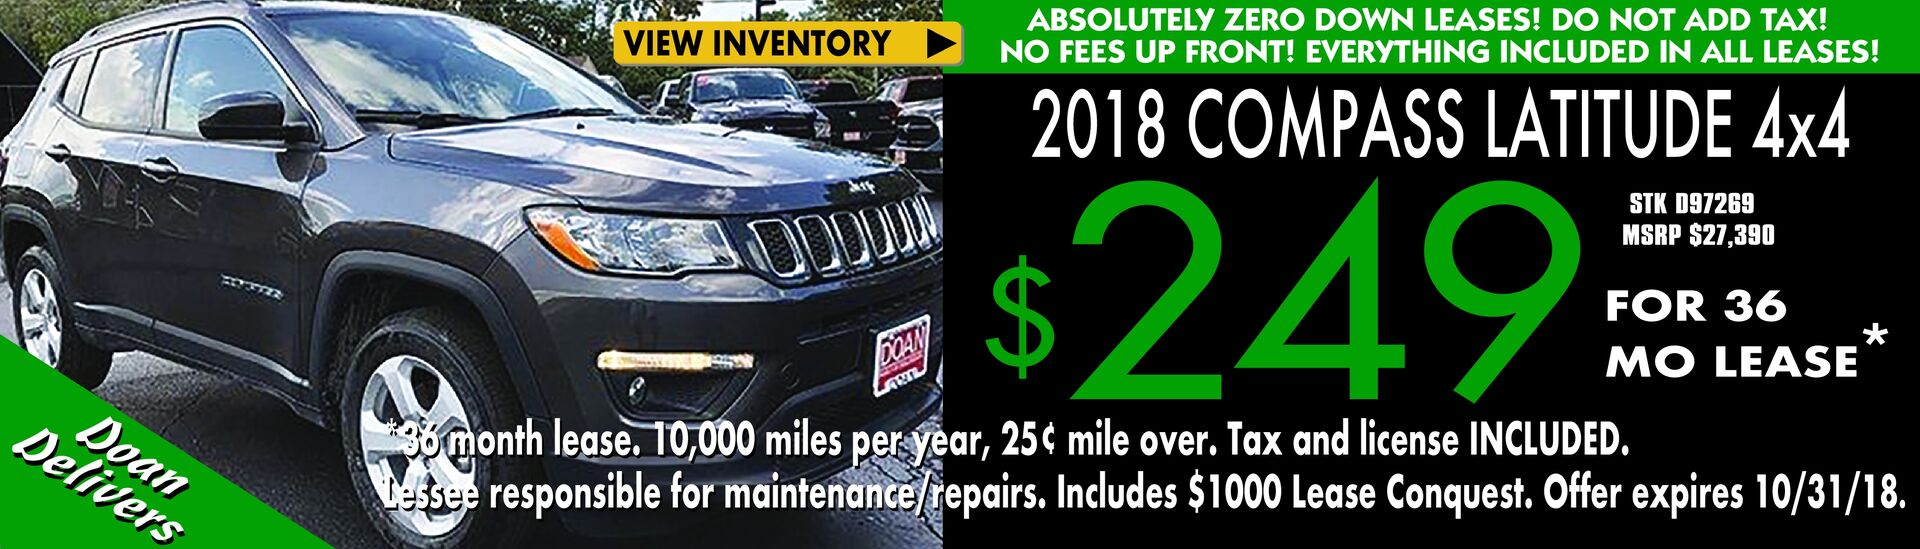 Zero Down Jeep Lease